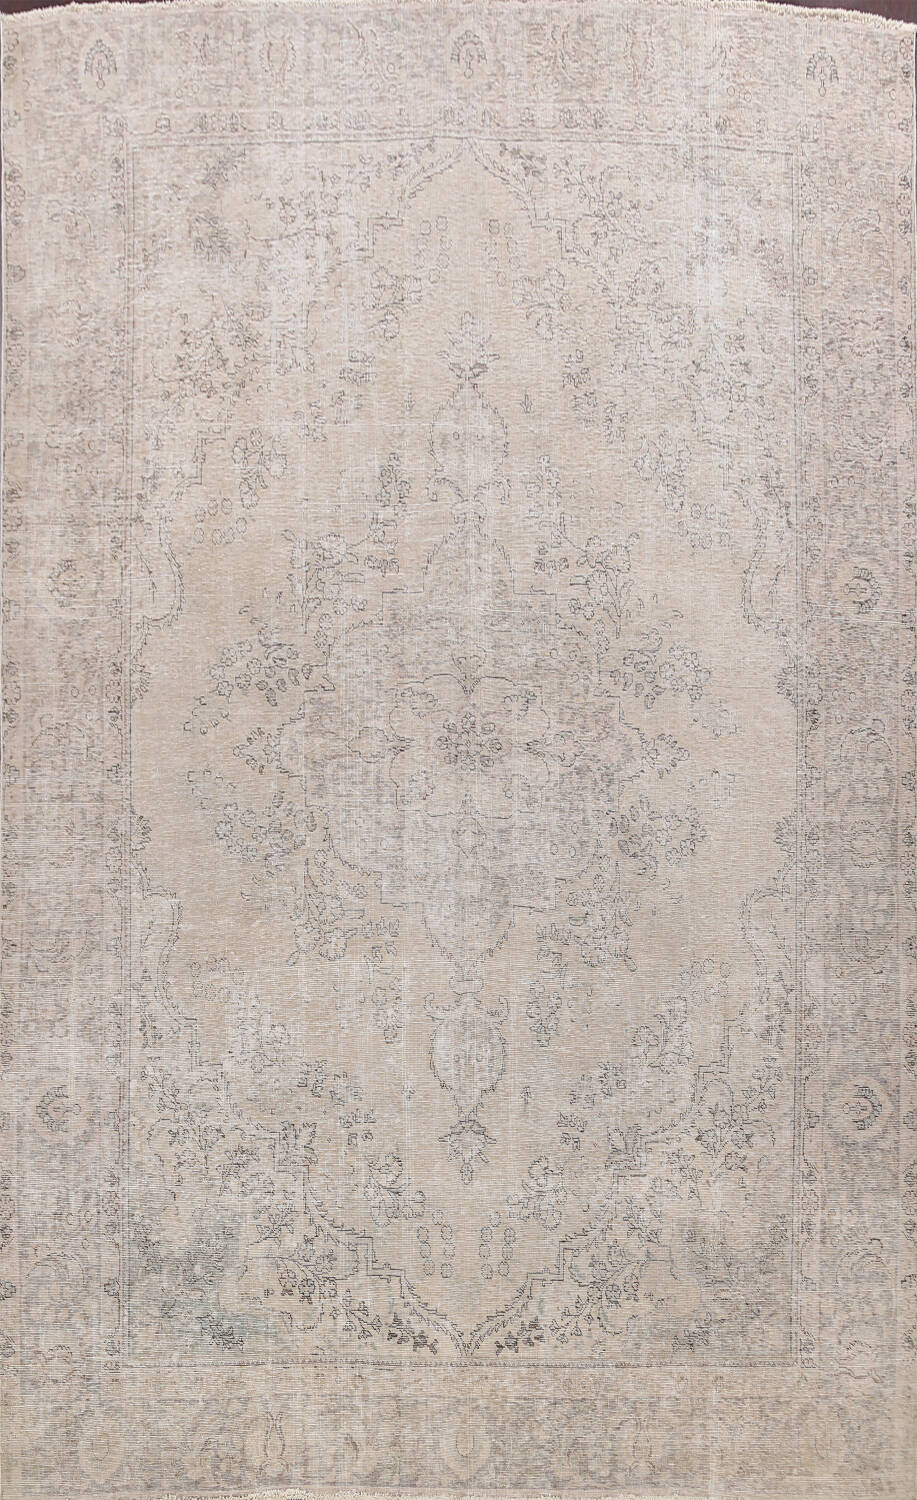 Muted Distressed Floral Tabriz Persian Area Rug 10x12 image 1